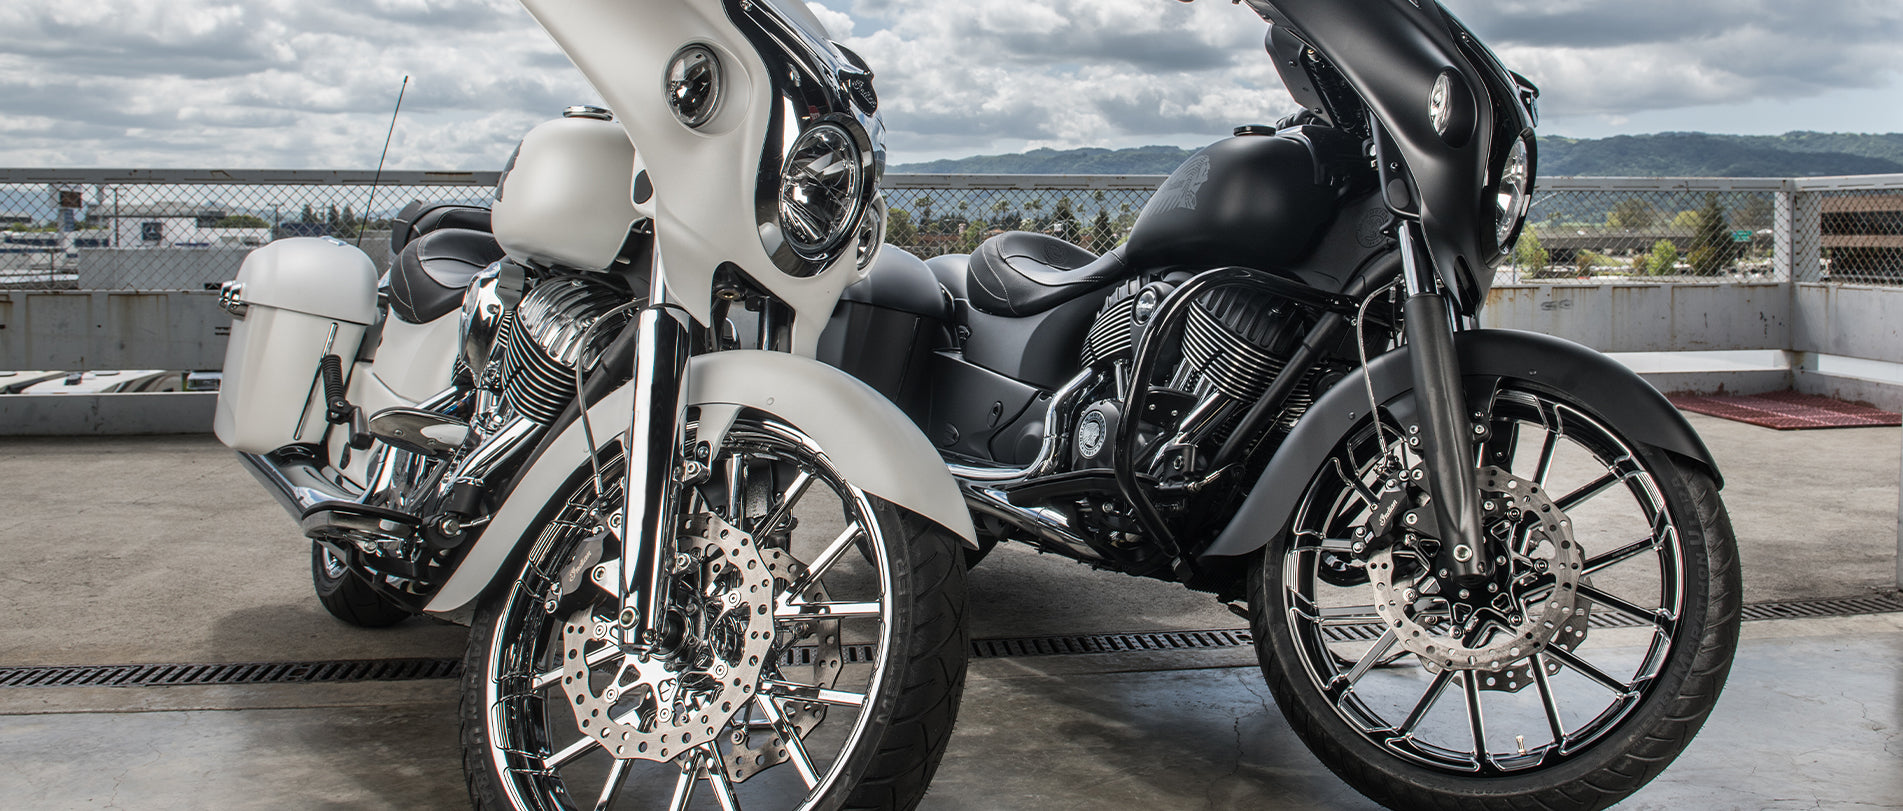 Wheels & Brakes for Indian Motorcycle®